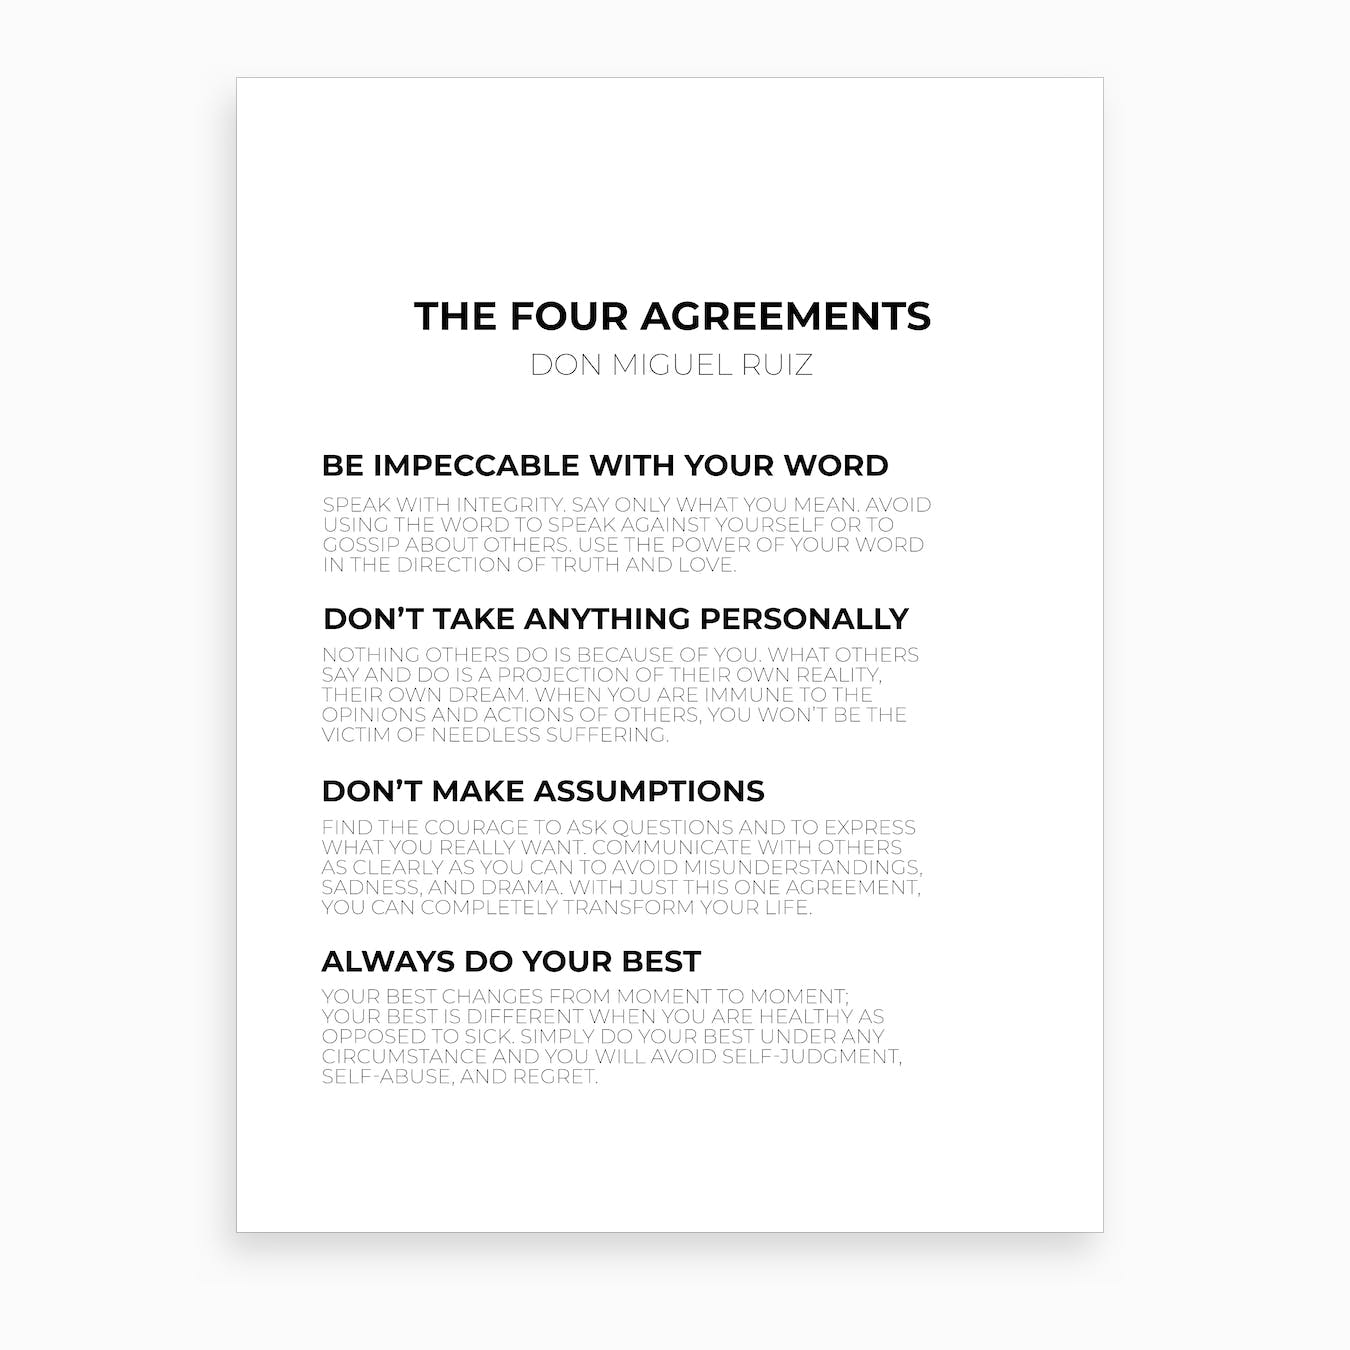 picture relating to The Four Agreements Printable titled The 4 Agreements Artwork Print